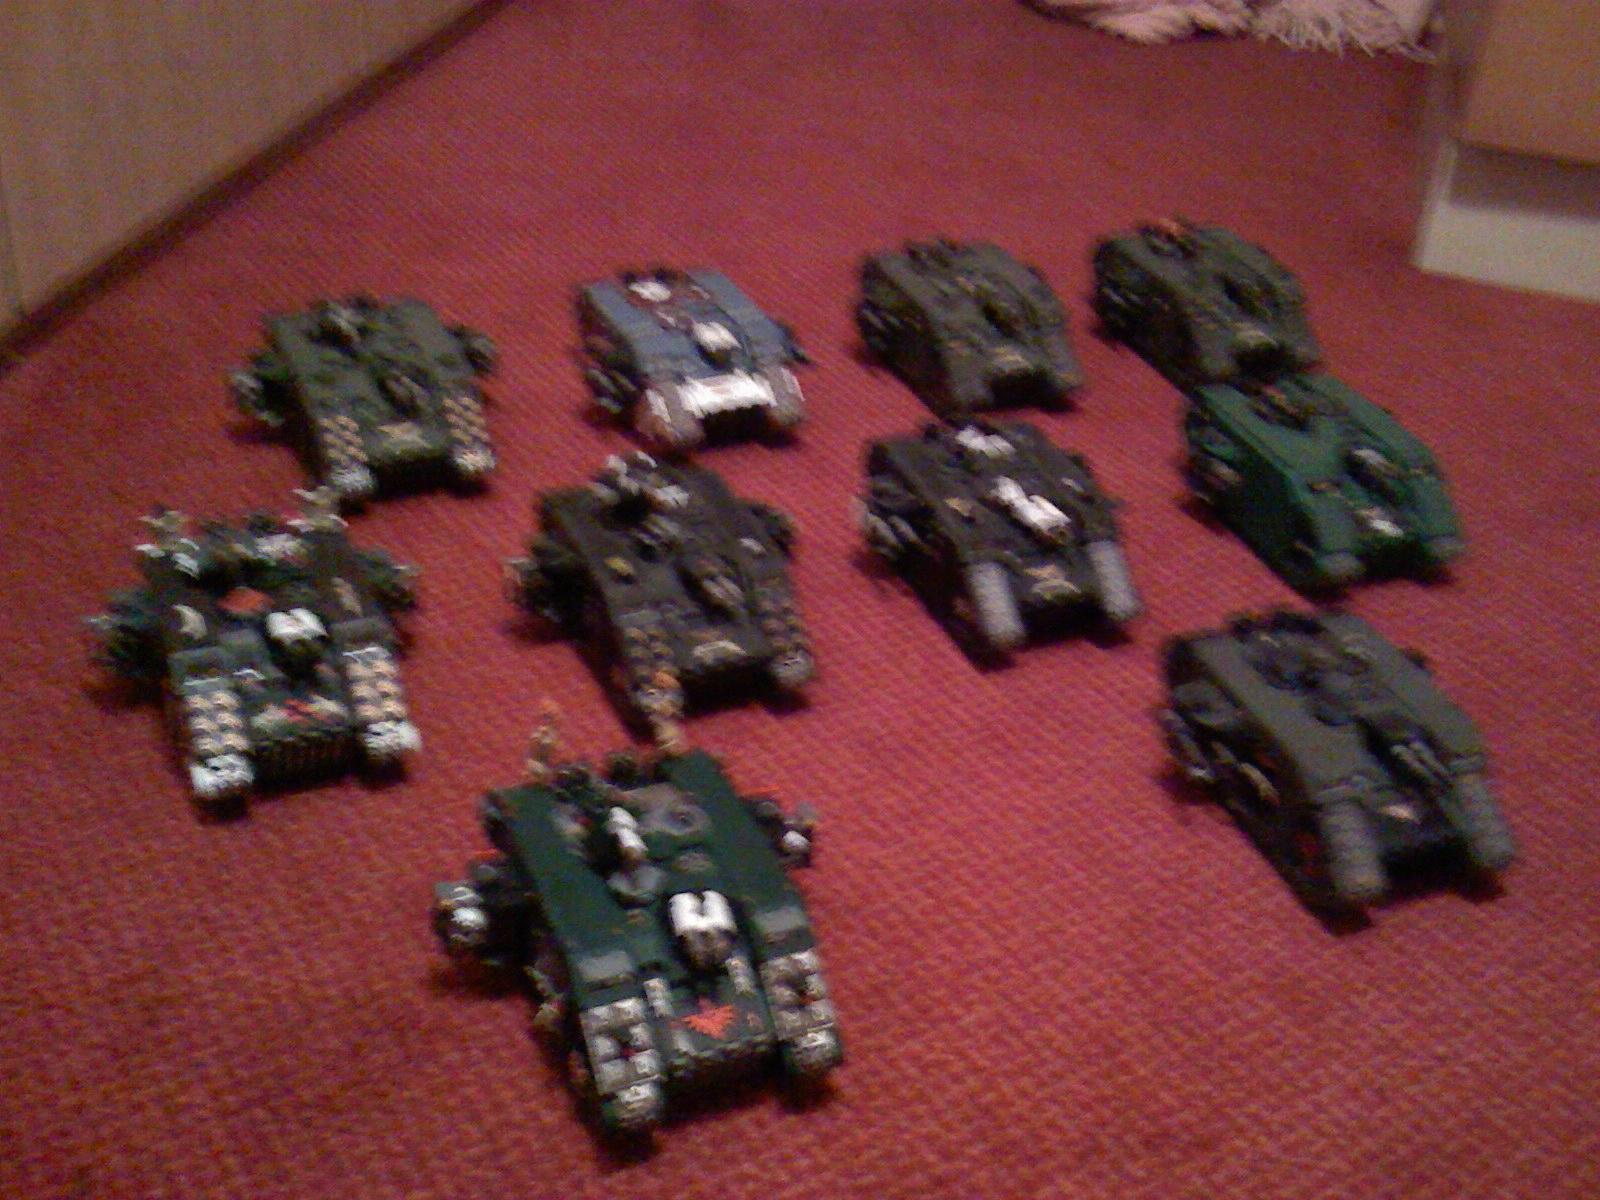 Land Raider, Space Marines, Warhammer 40,000